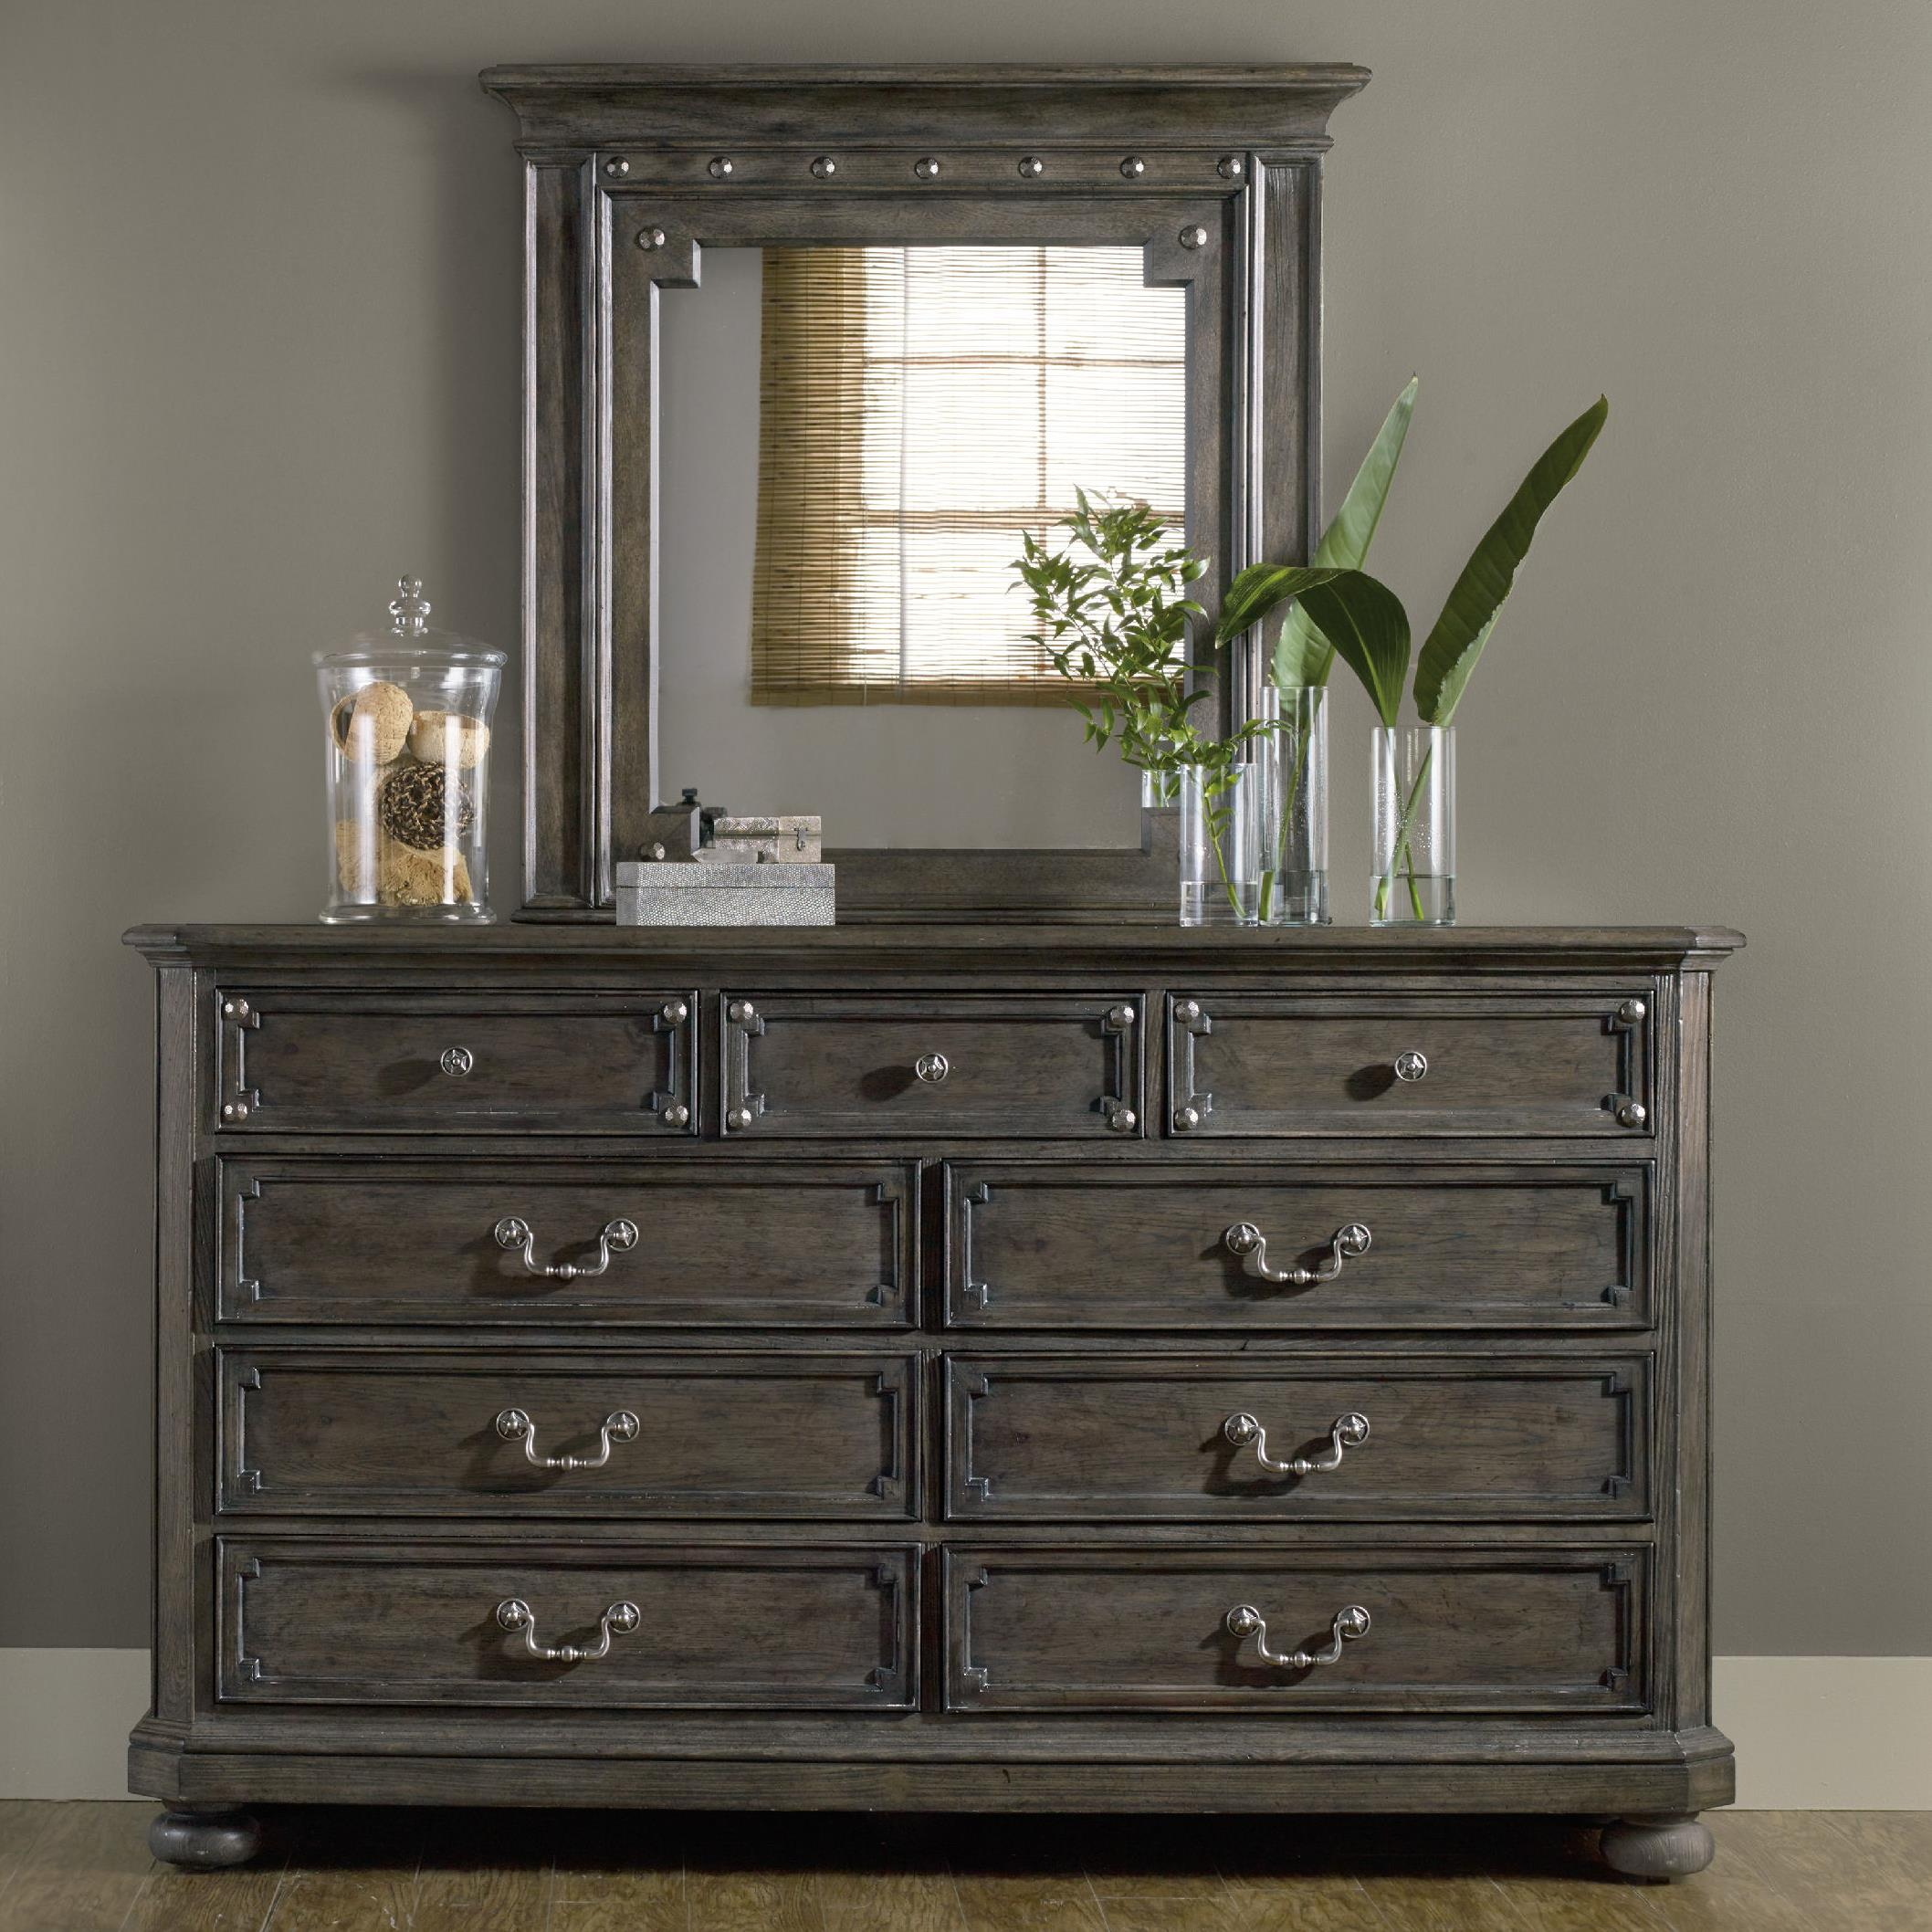 Hooker Furniture Vintage West Dresser and Mirror - Item Number: 5700-90002+90007